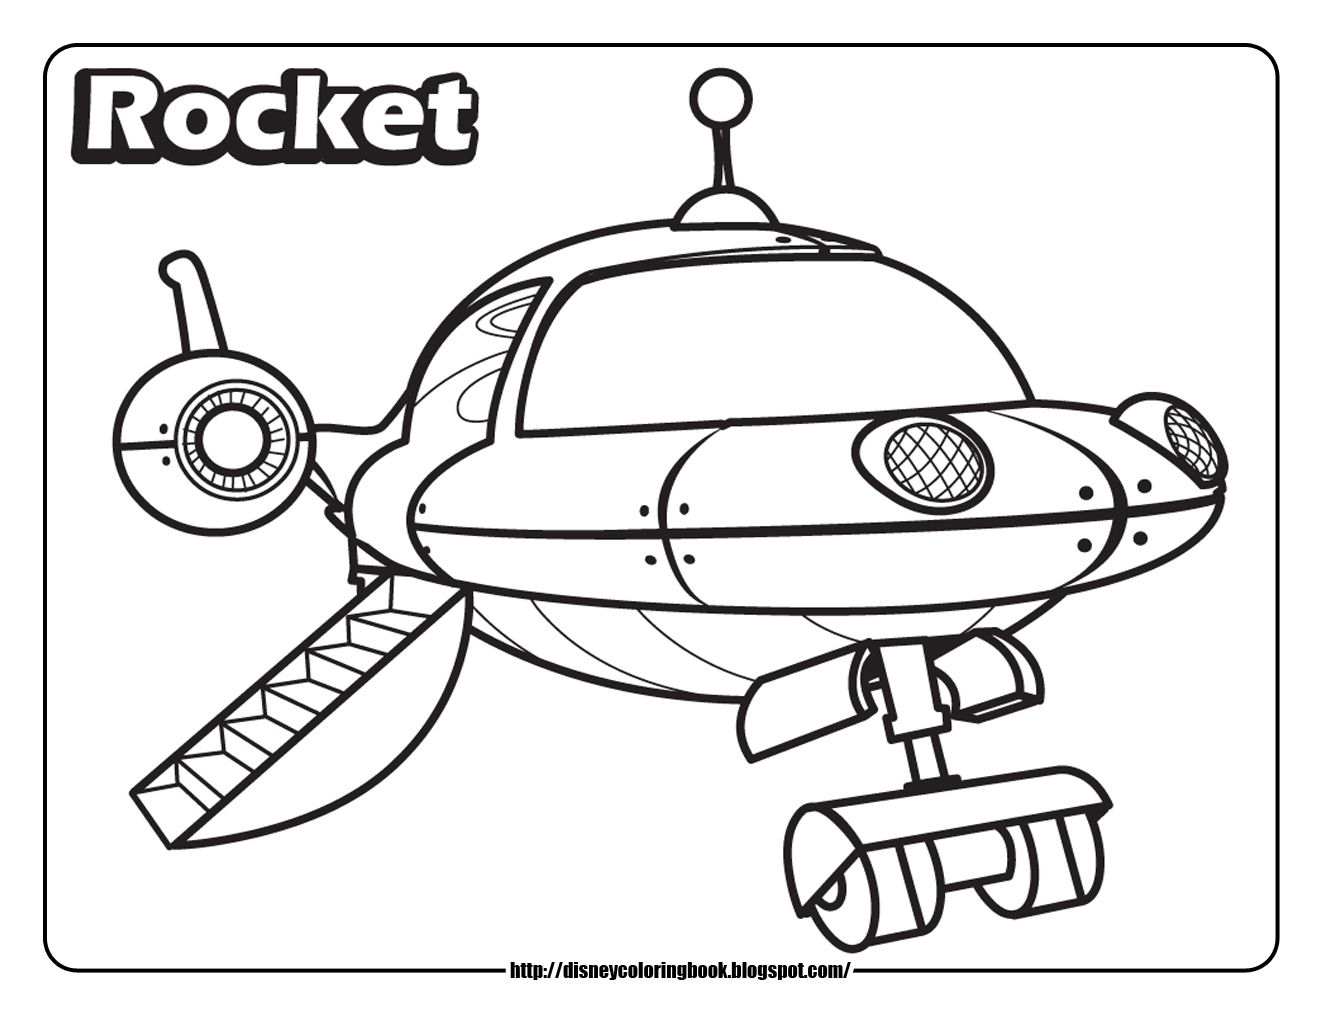 find this pin and more on malebog by ebhpklud visit the little einsteins website to watch videos and print coloring pages